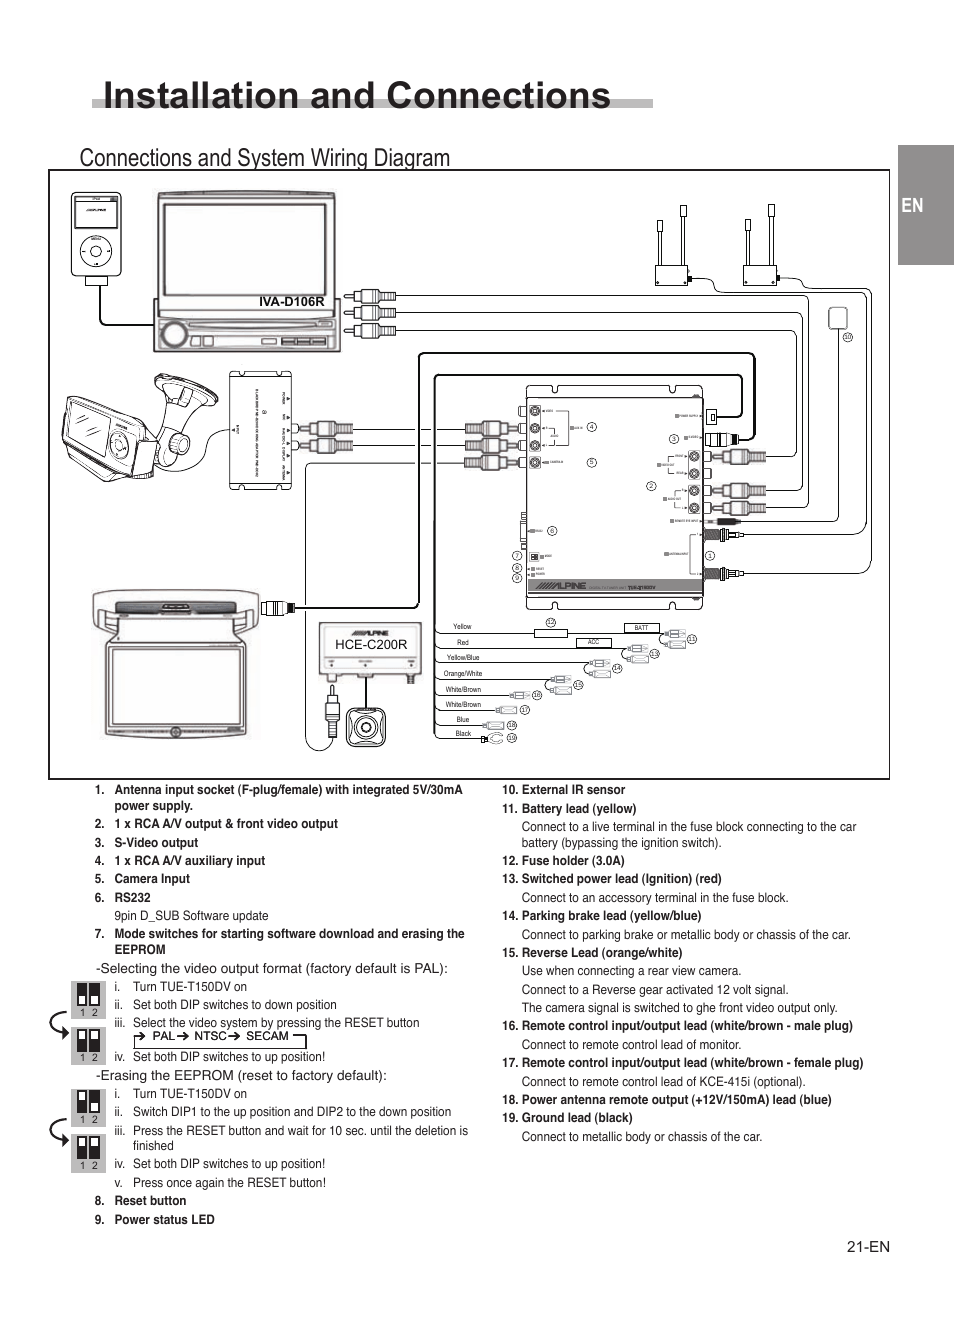 hight resolution of installation and connections connections and system wiring diagraminstallation and connections connections and system wiring